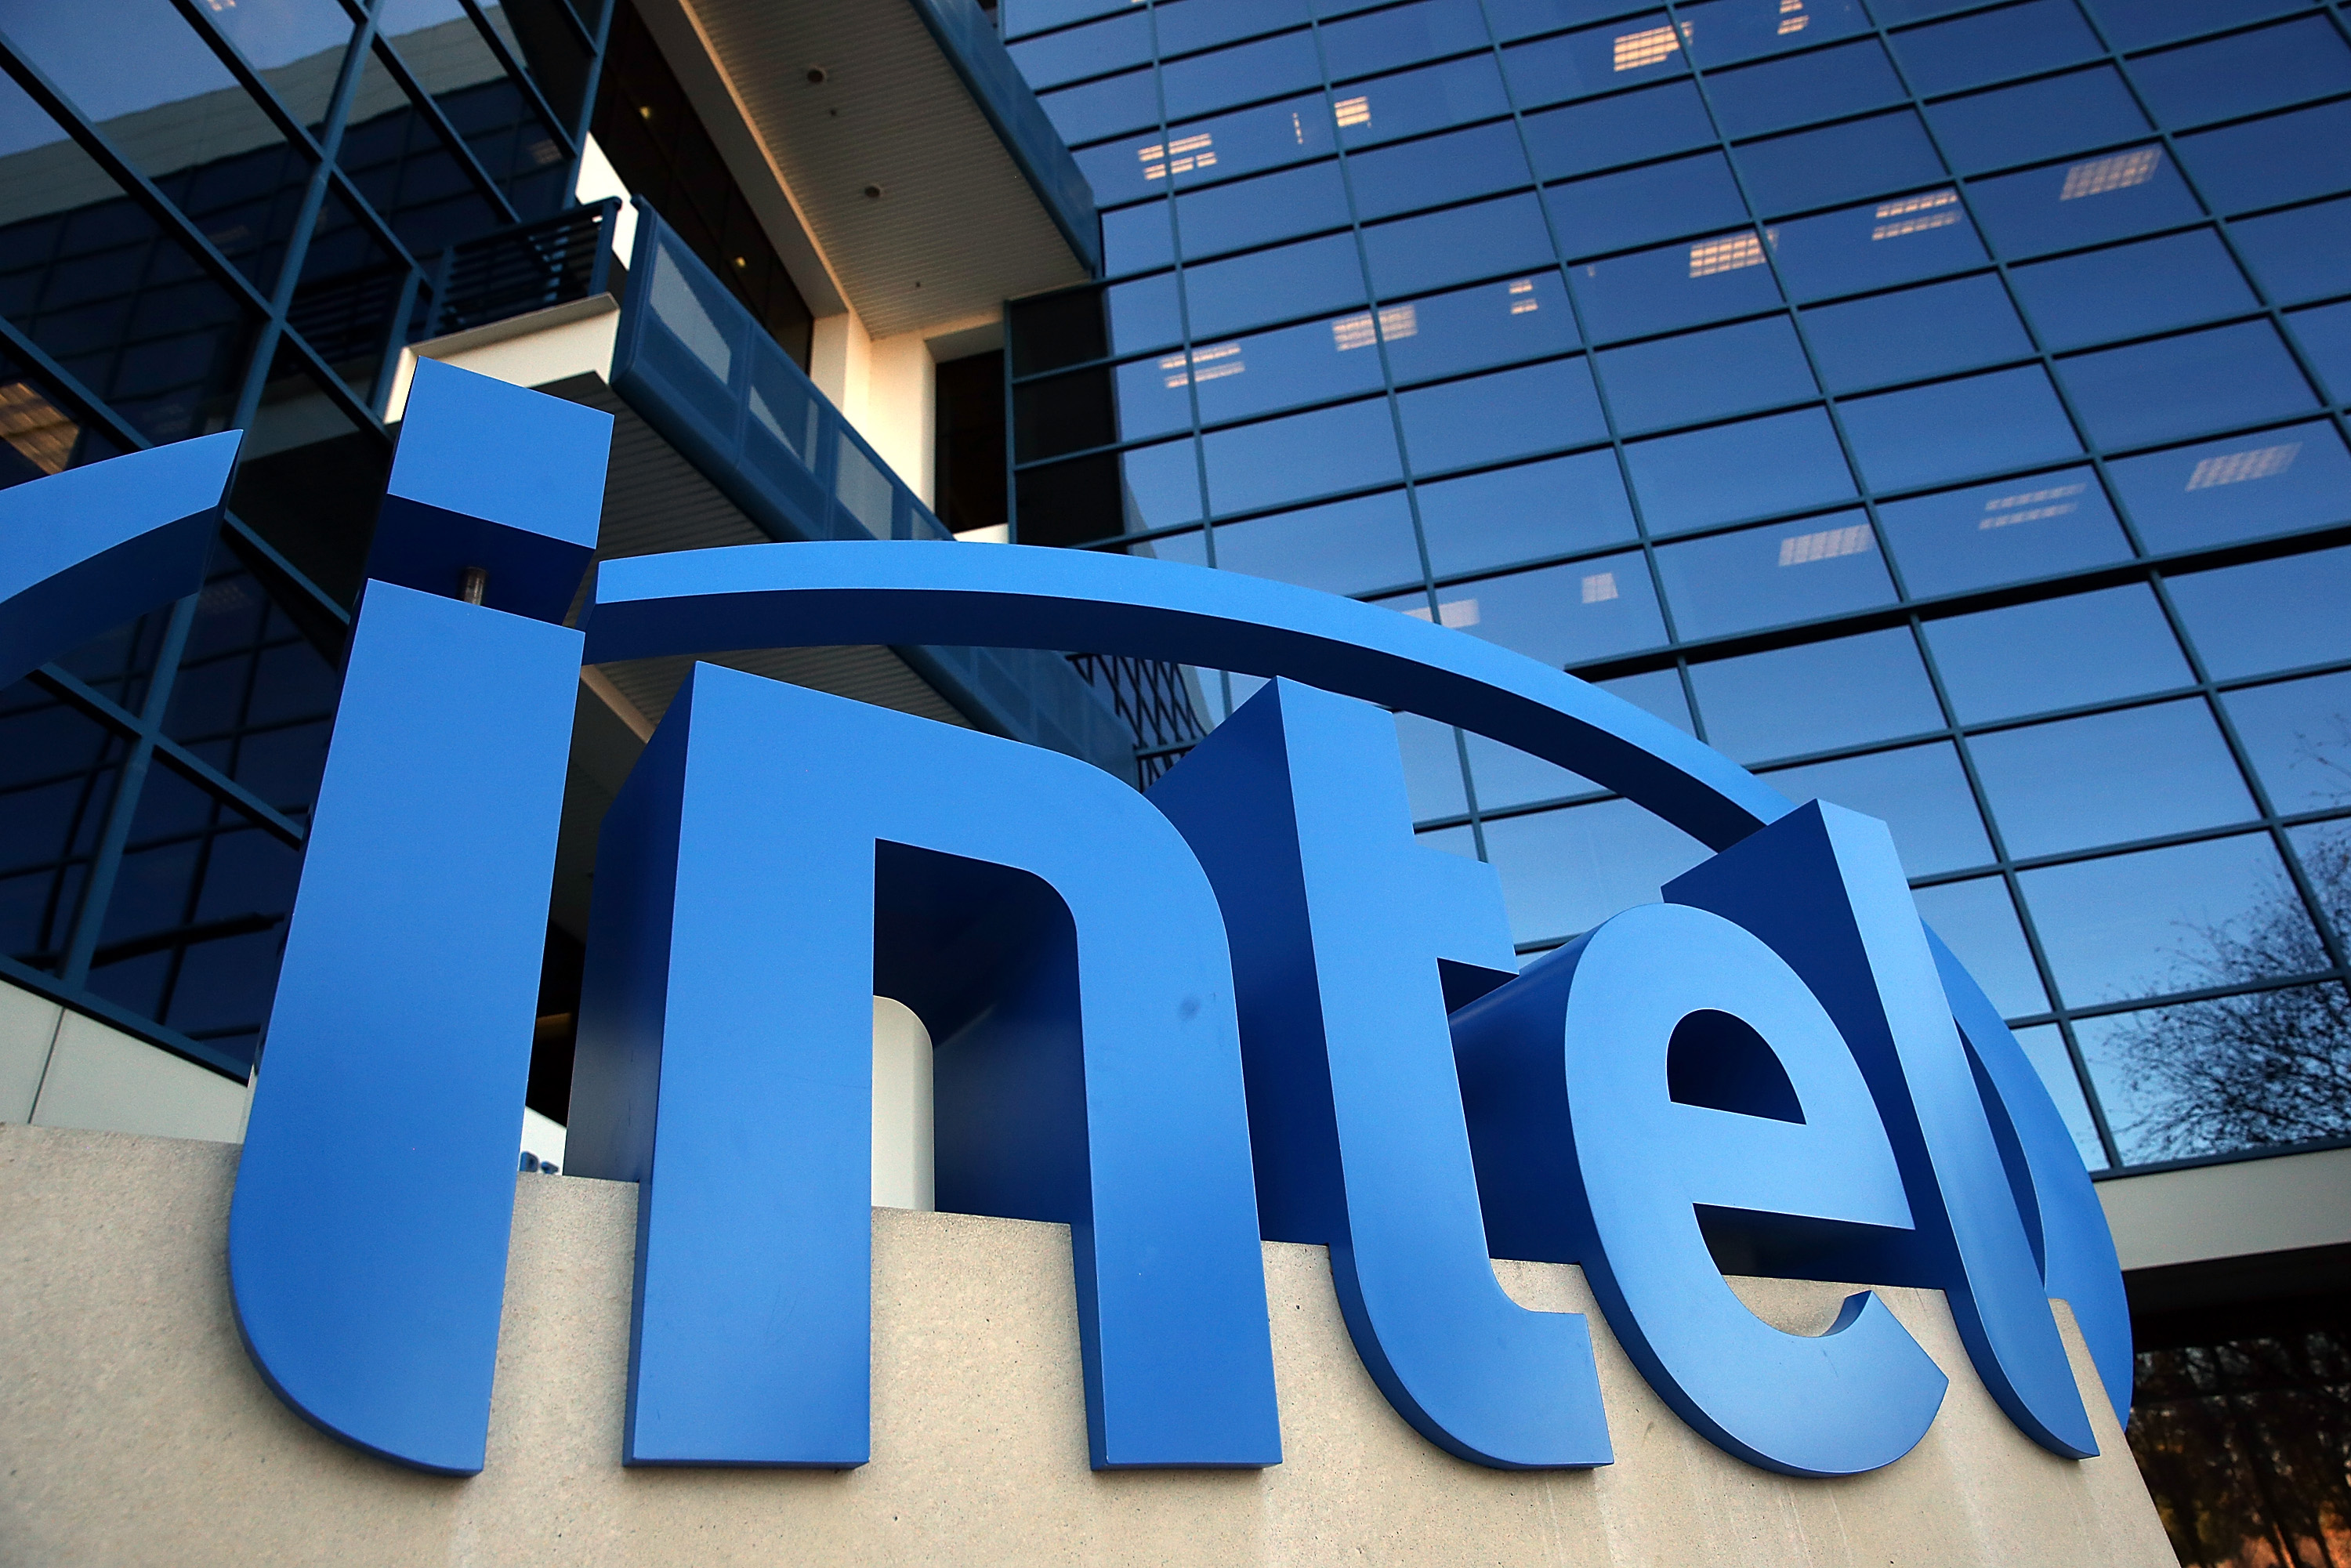 Intel giants flog 1 billion dollars worth of Artificial Intelligence chips!